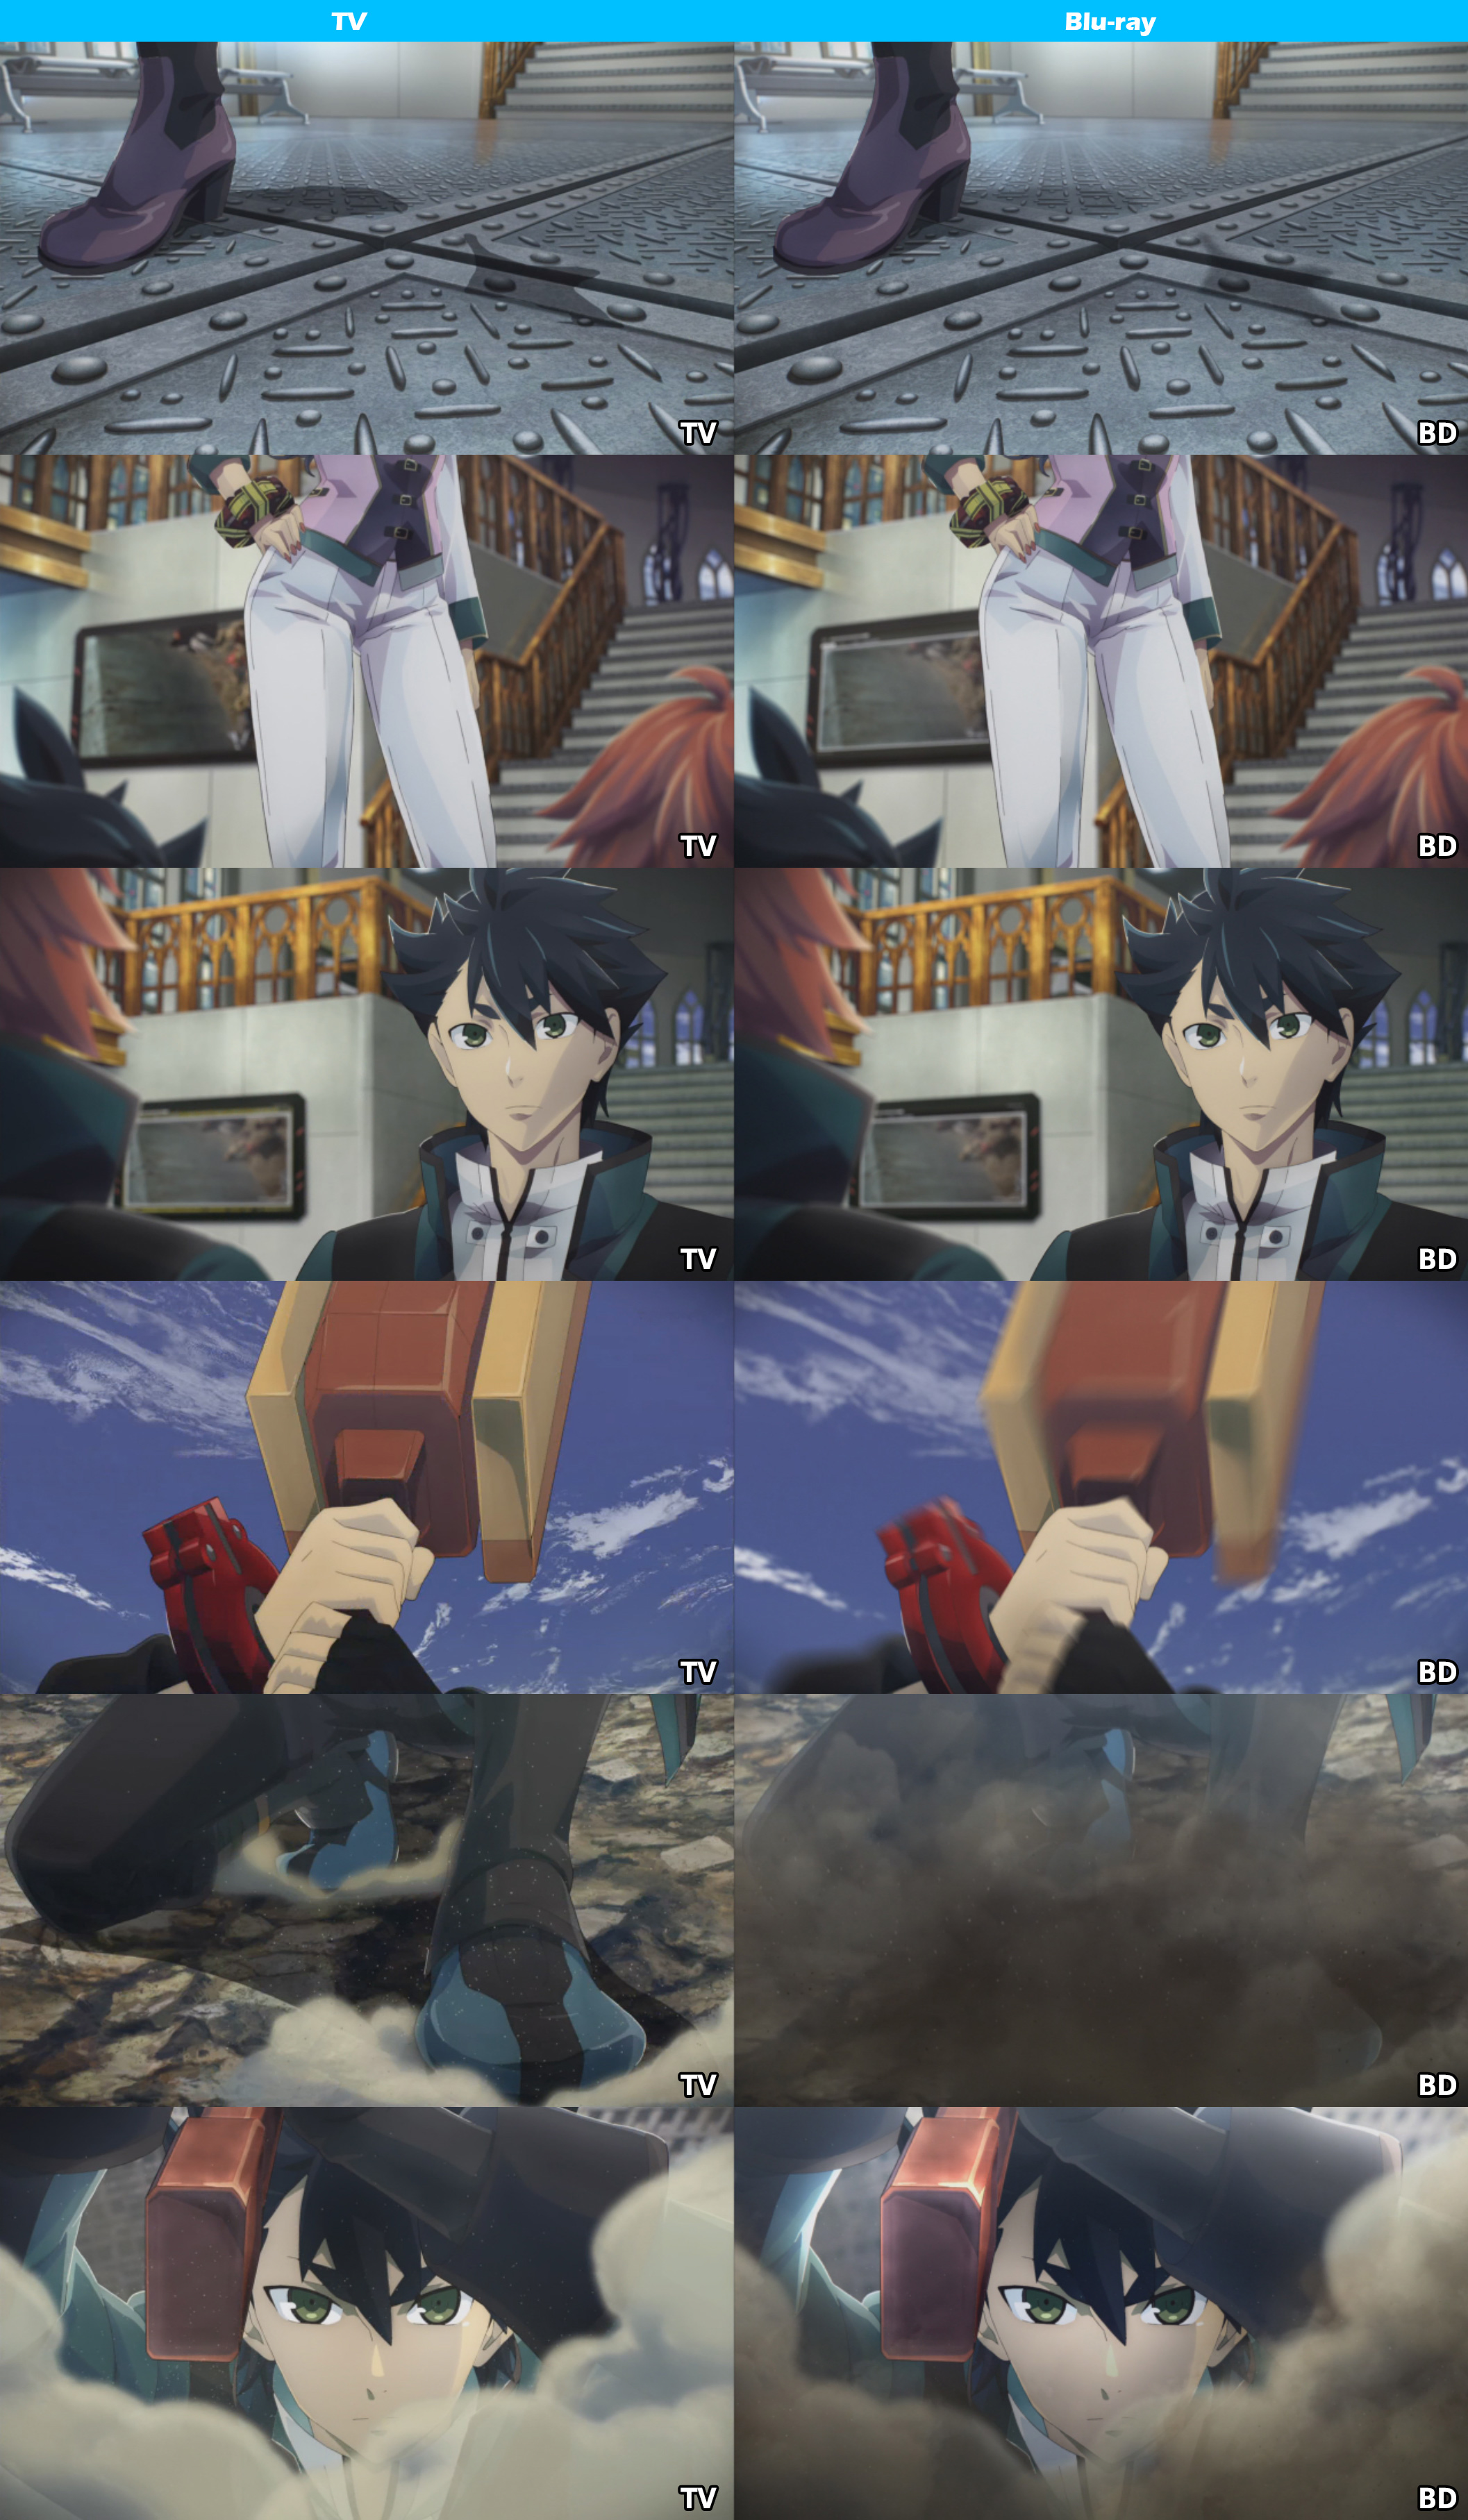 God-Eater-Anime-TV-and-Blu-ray-Comparison-1